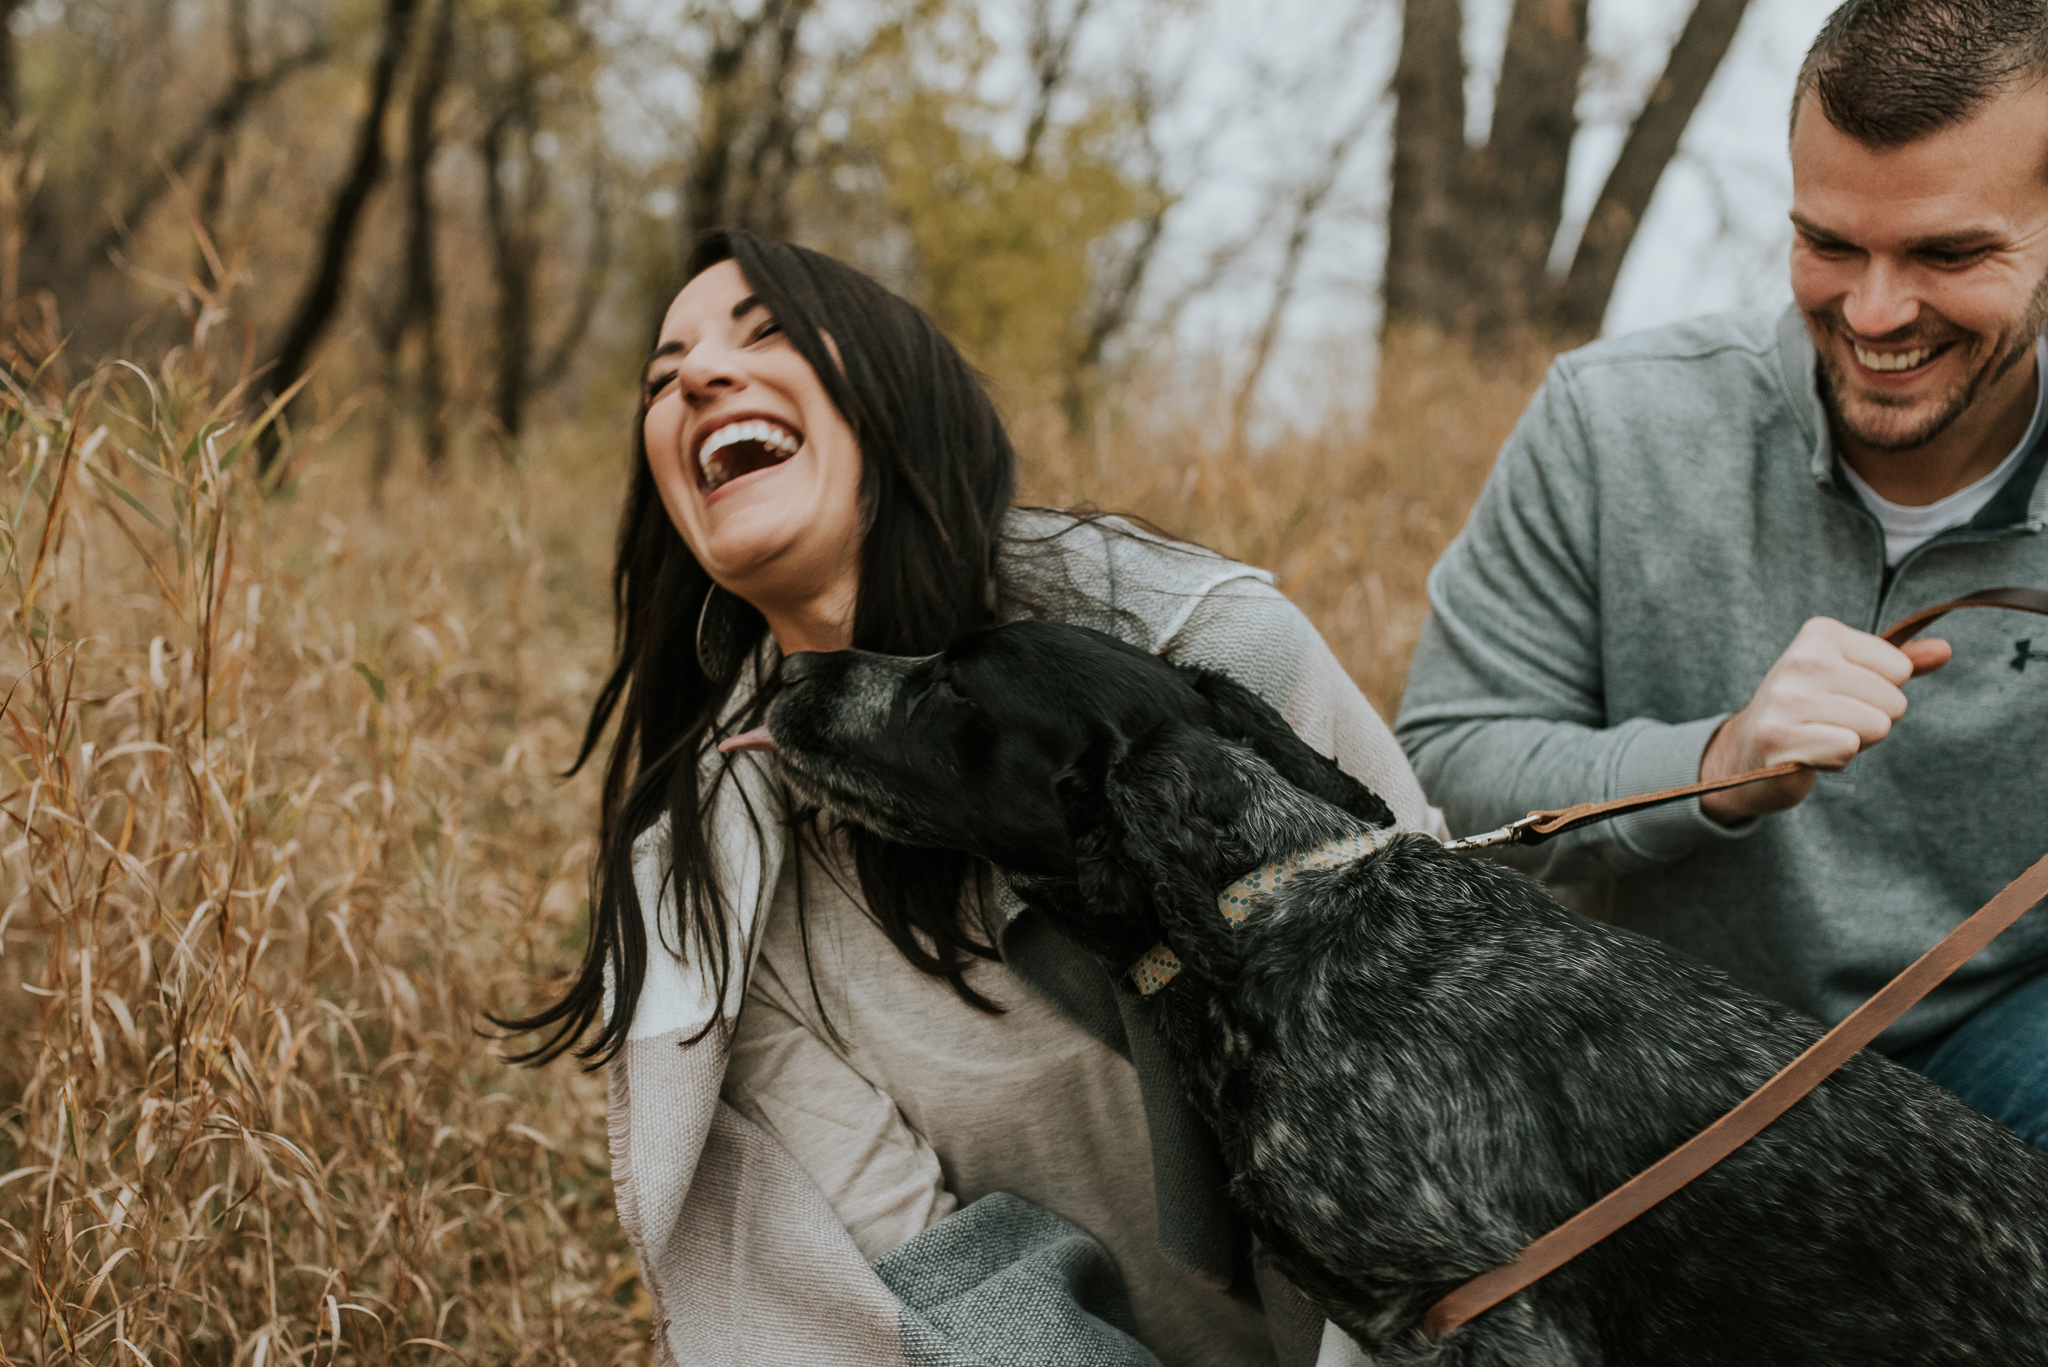 engagement-anniversary-dog-pictures-fall-22.jpg